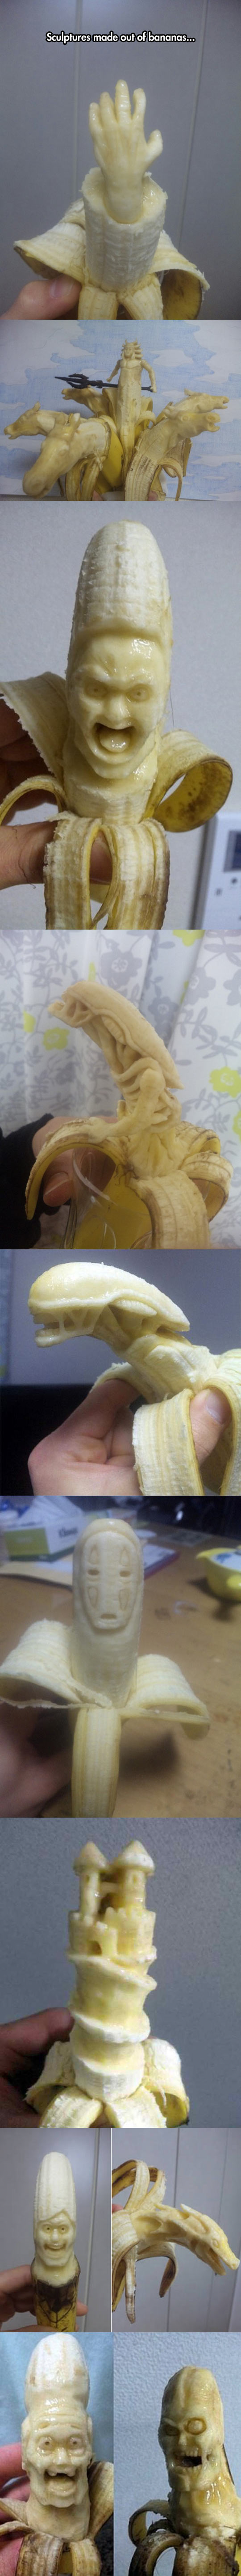 cool-banana-sculpture-alien-fresh